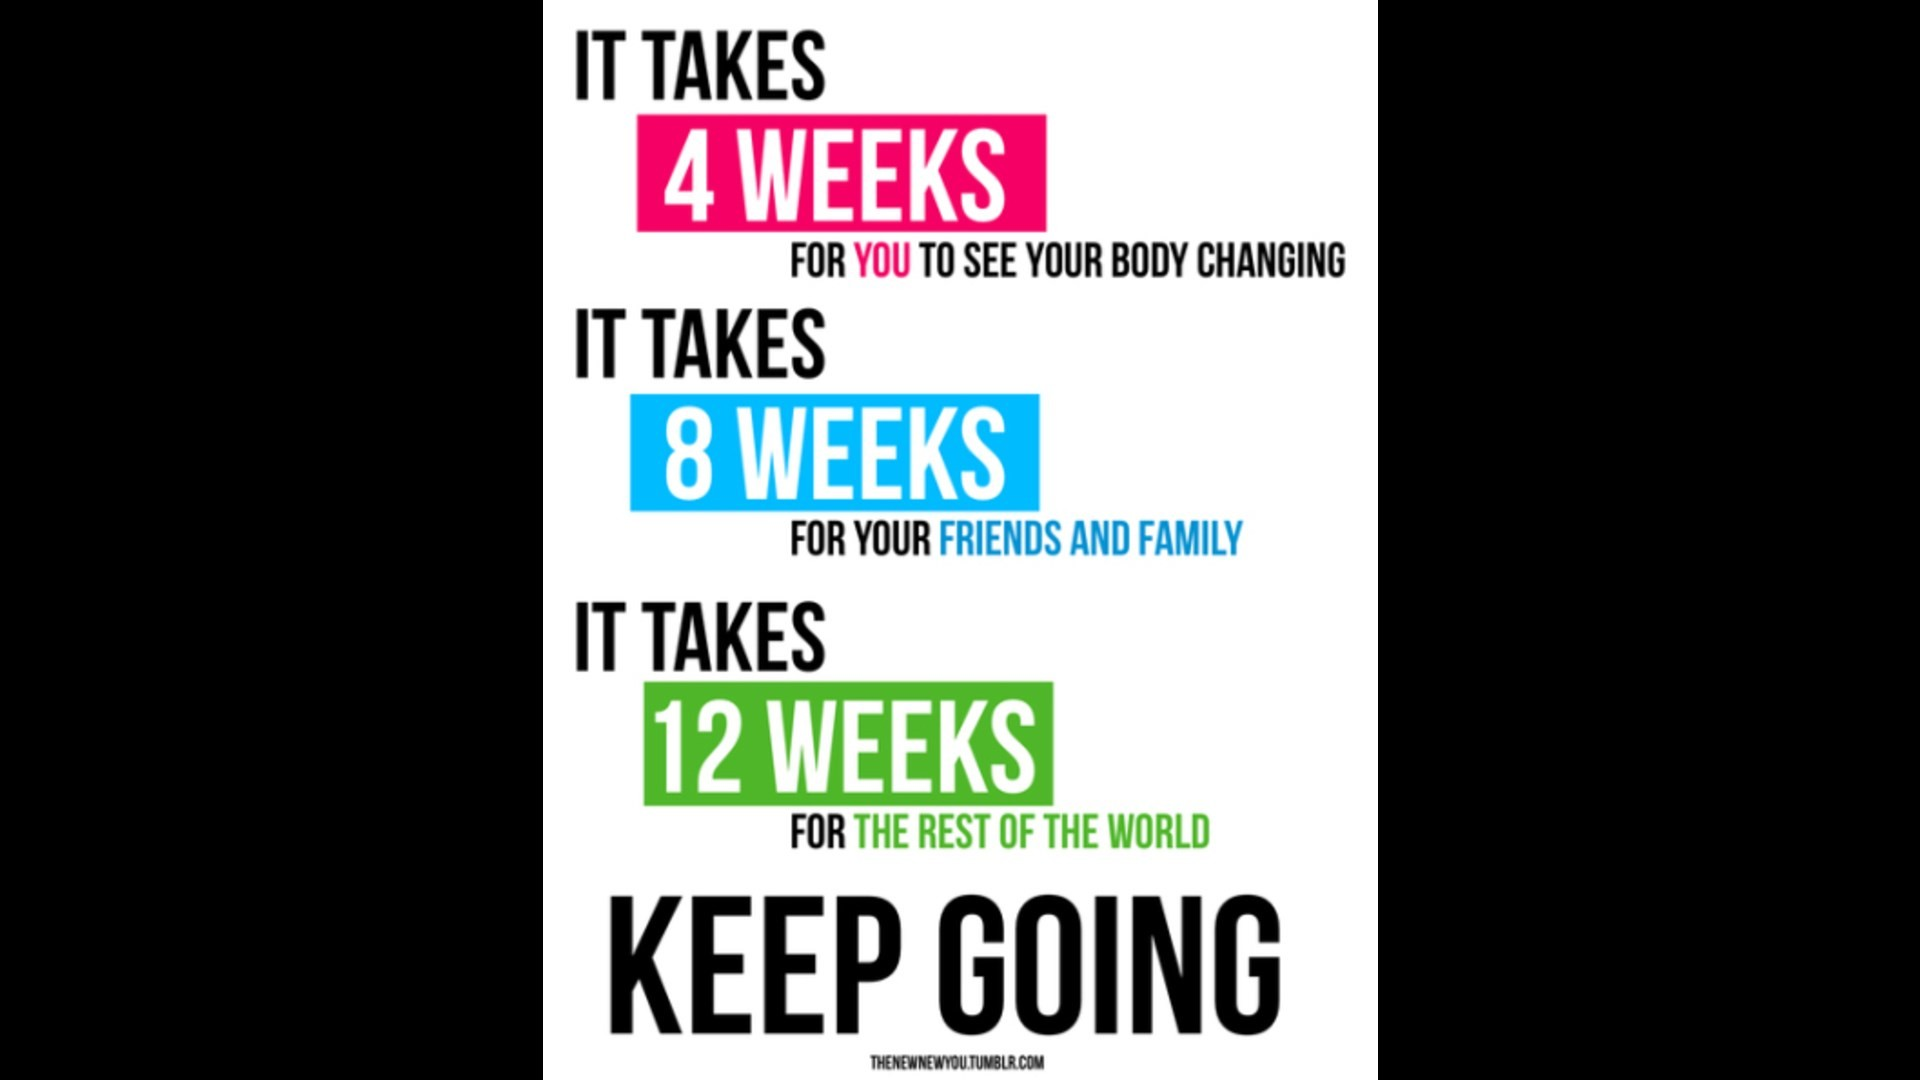 Motivational Fitness Quotes Background 1920x1080 Wallpaper Teahub Io